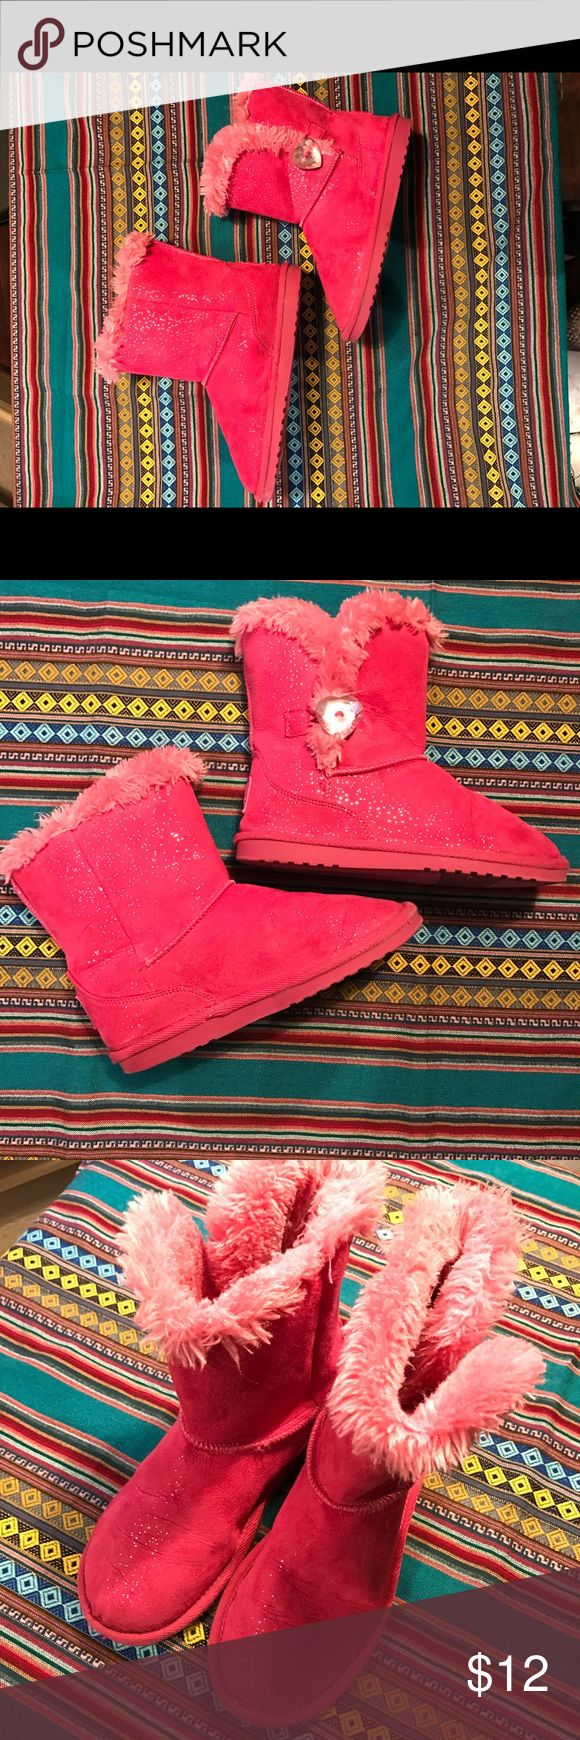 ❤Girls Size 2 Pink Ugg Style Boots ❤Girls Size 2 Pink Ugg Style Boots: Great Condition Pre-Owned with Heart Shaped Rhinestone Button, Clean Toes & Soles, Fur Lining Intact, Please See Additional Pics & My Love Notes for Solid 5 Star Ratings on Pre-Owned Shoes! Shoes Boots